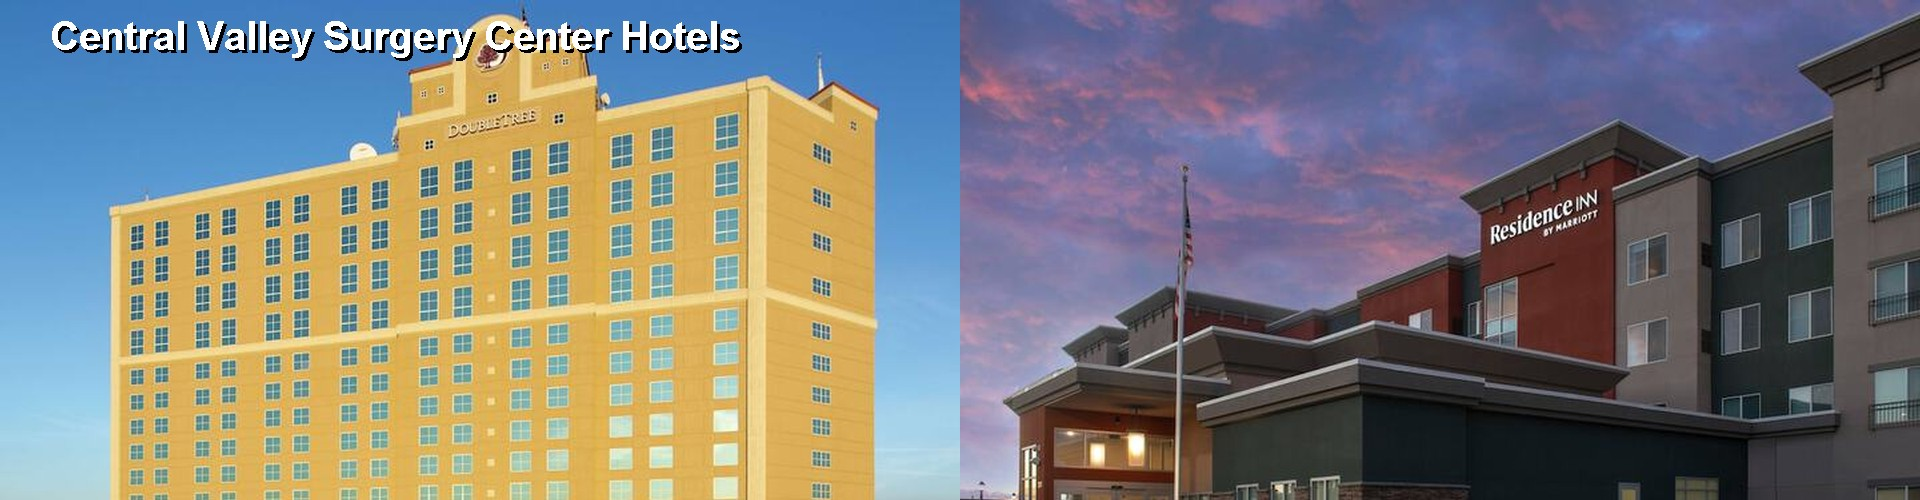 5 Best Hotels near Central Valley Surgery Center